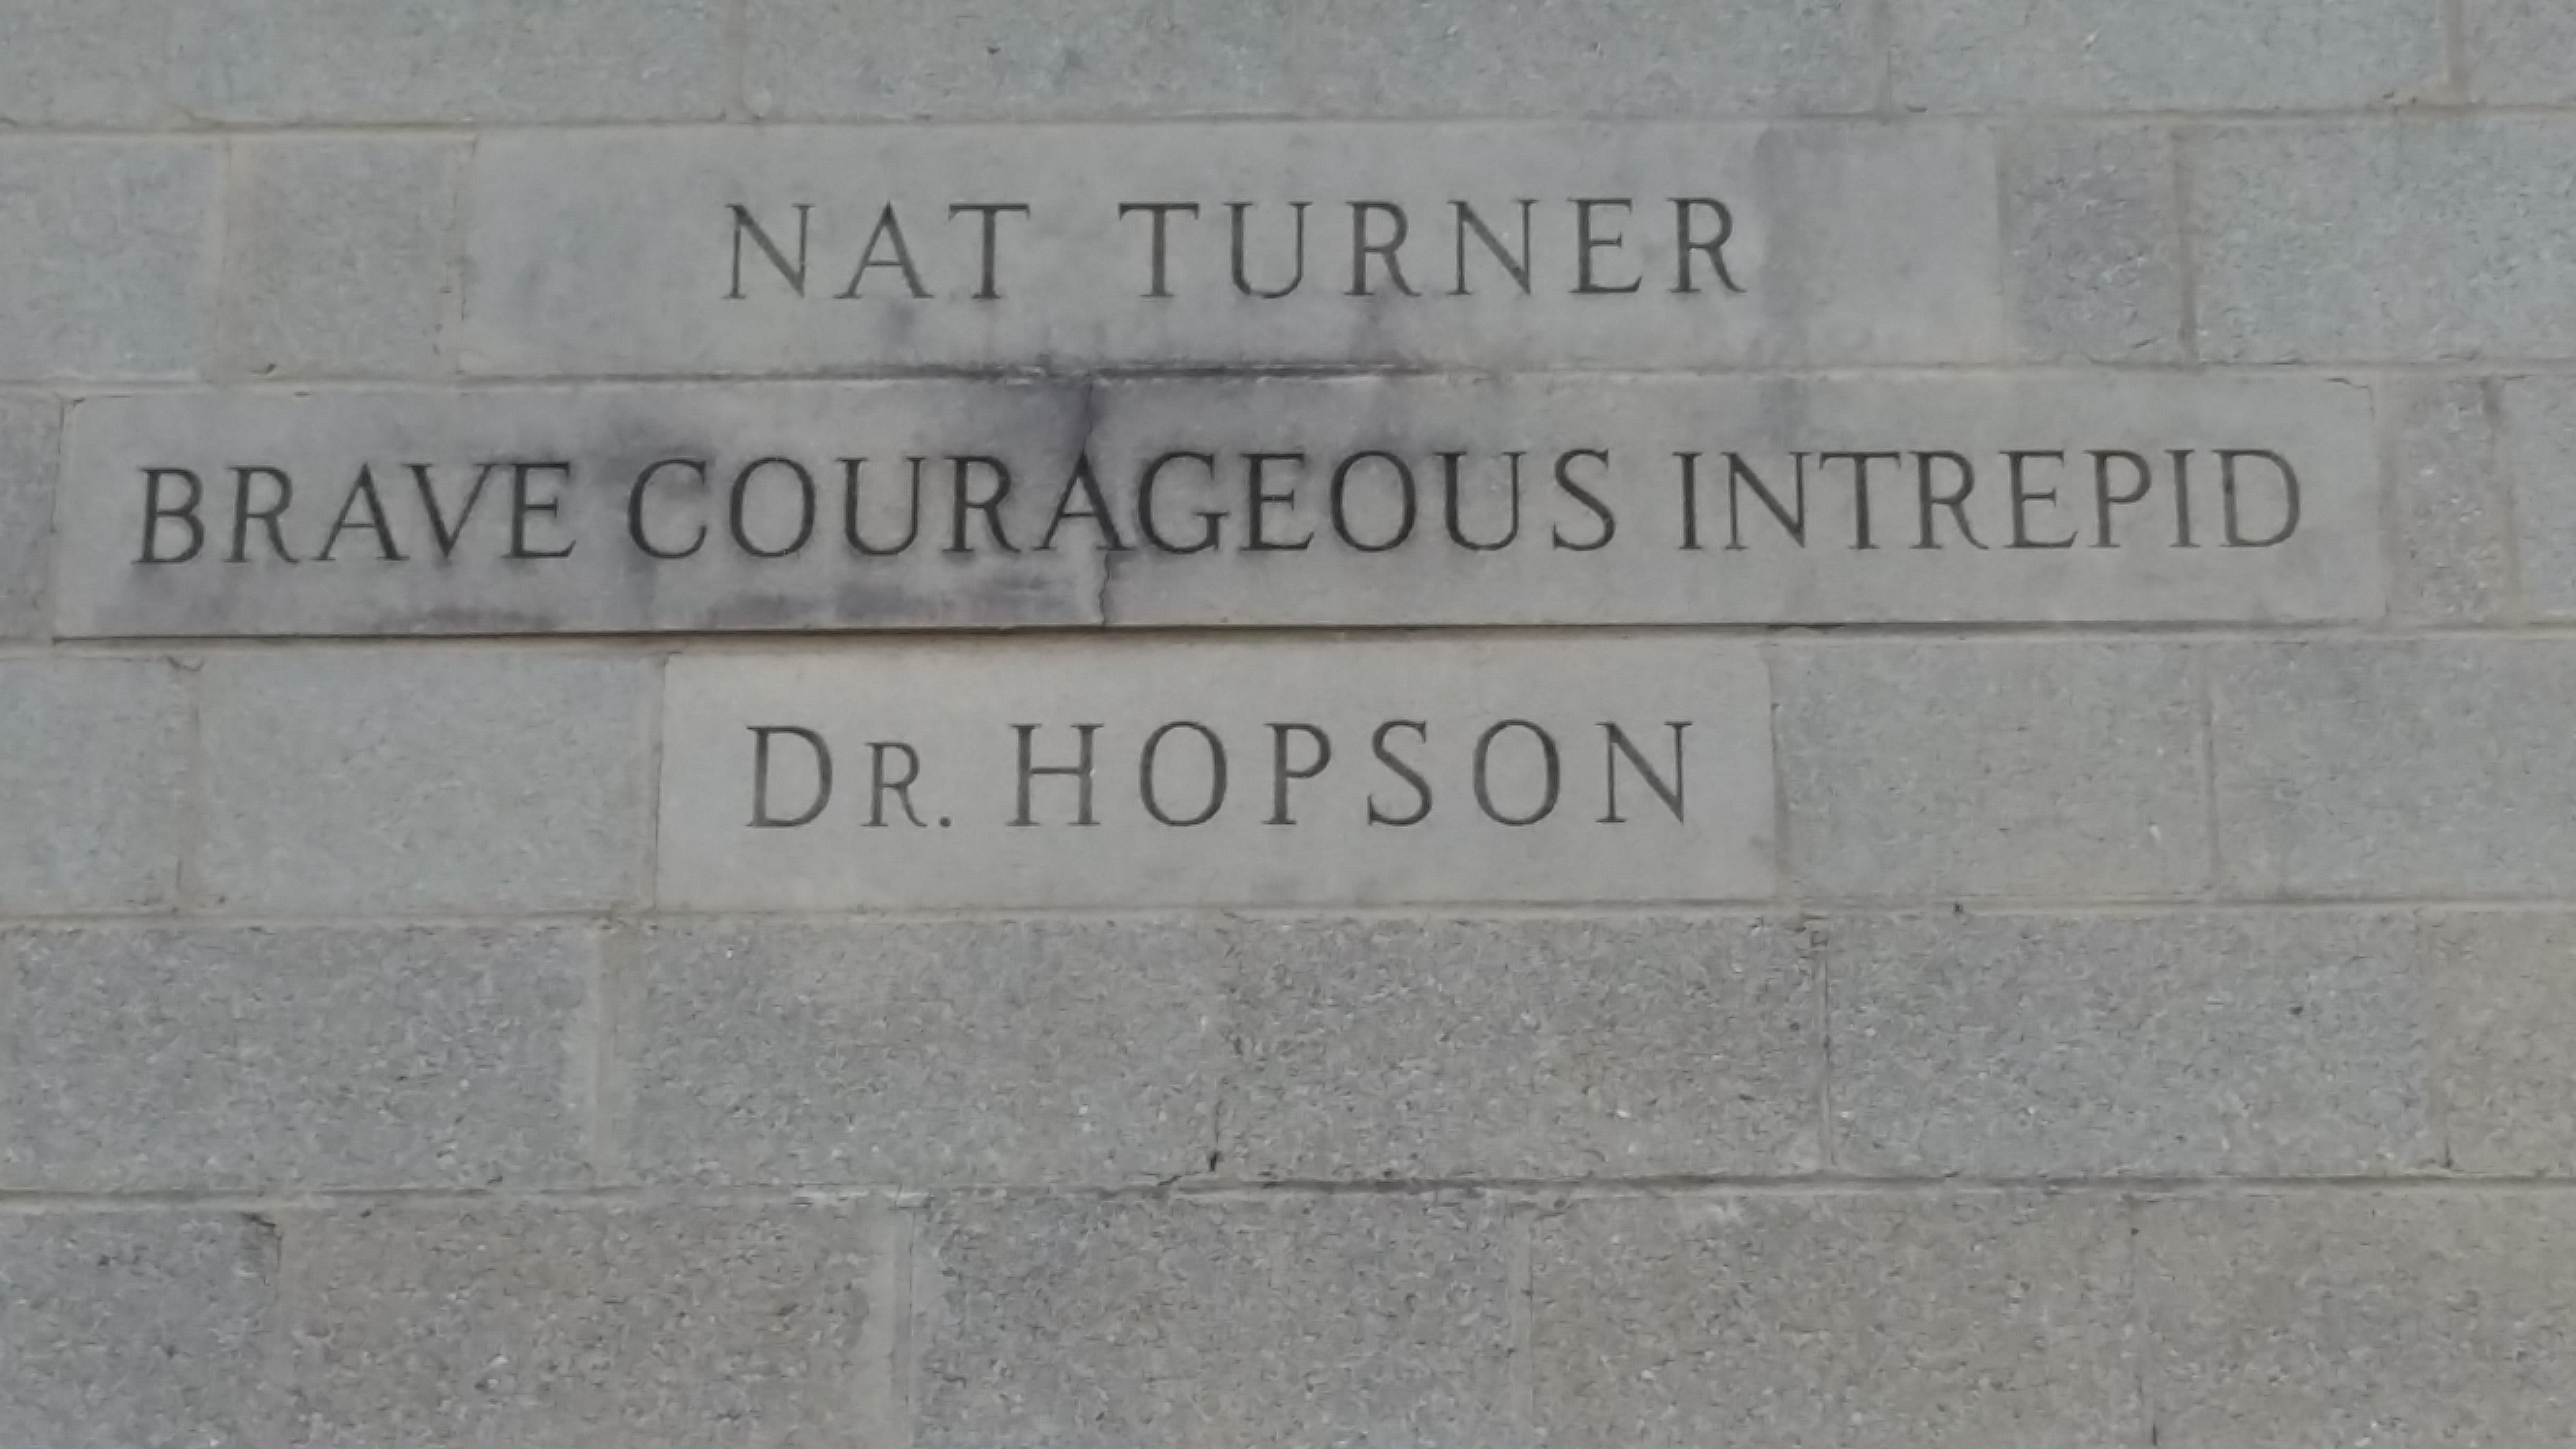 Shows the tribute to Nat Turner on McKinley Hopson's apartment building in the 1950s . This was thought to be unheard of given the fact that Nat Turner's slave revolt was one pf the bloodiest revolts in history.